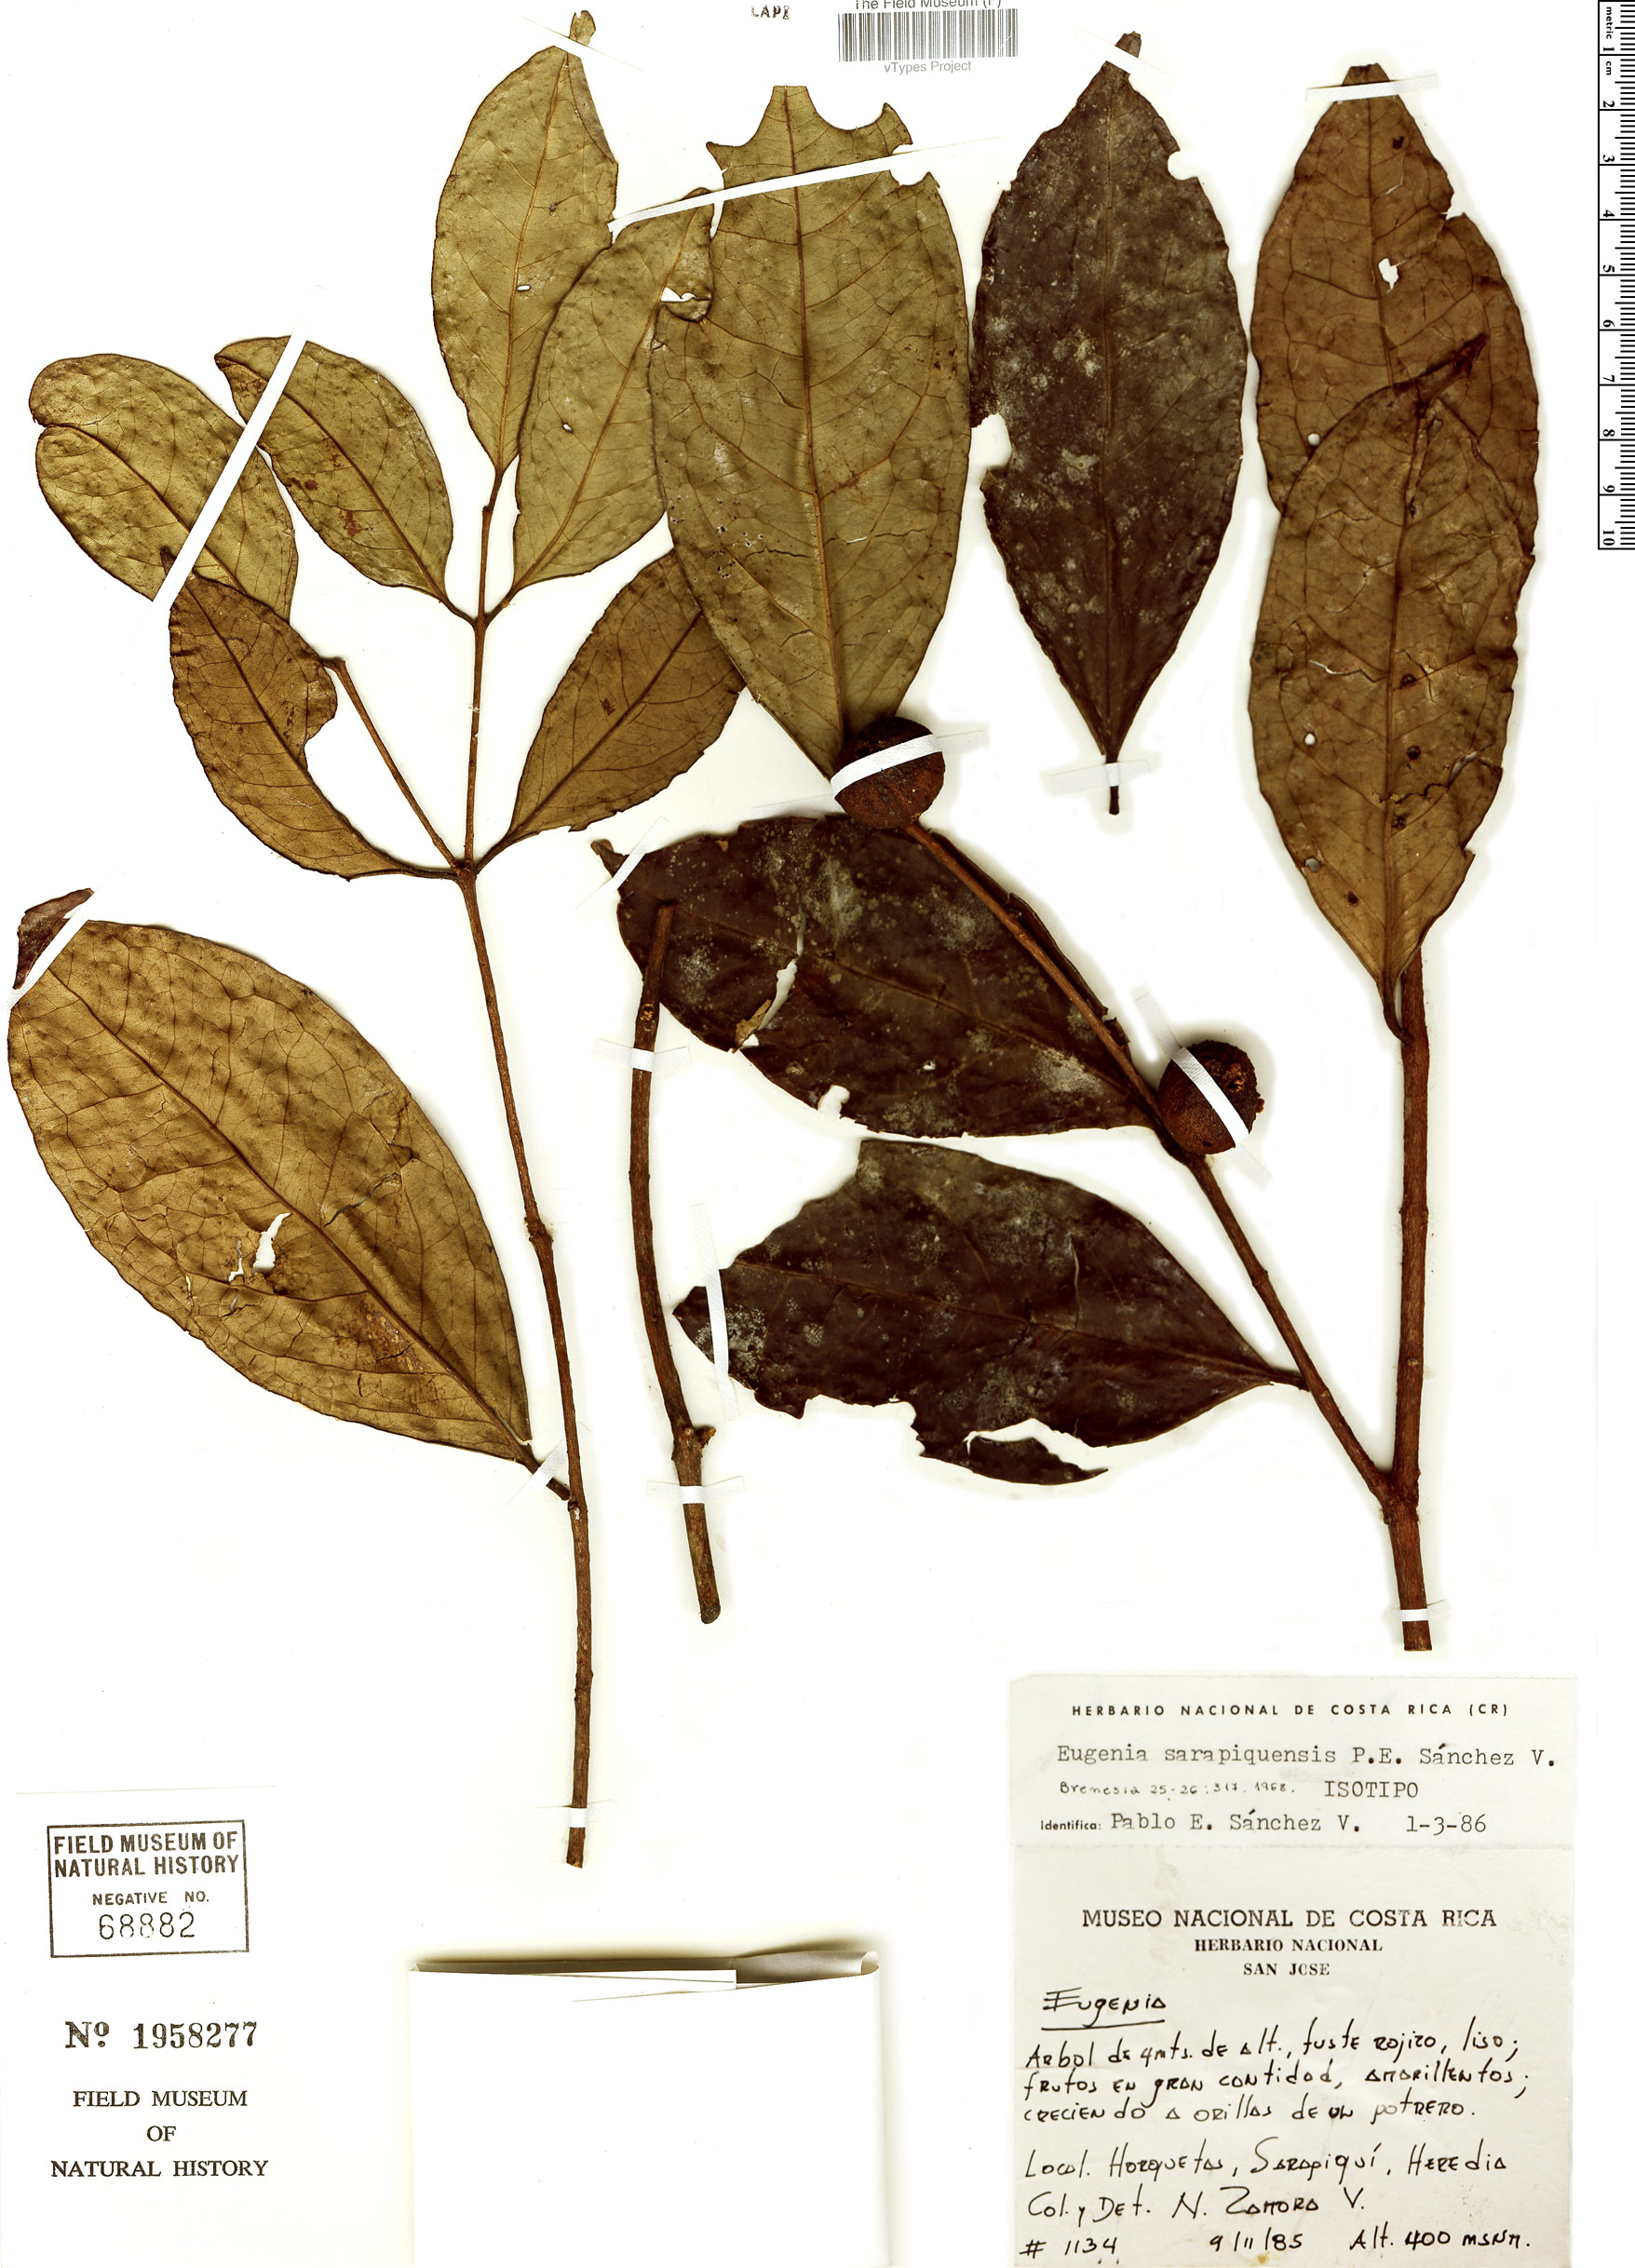 Specimen: Eugenia sarapiquensis